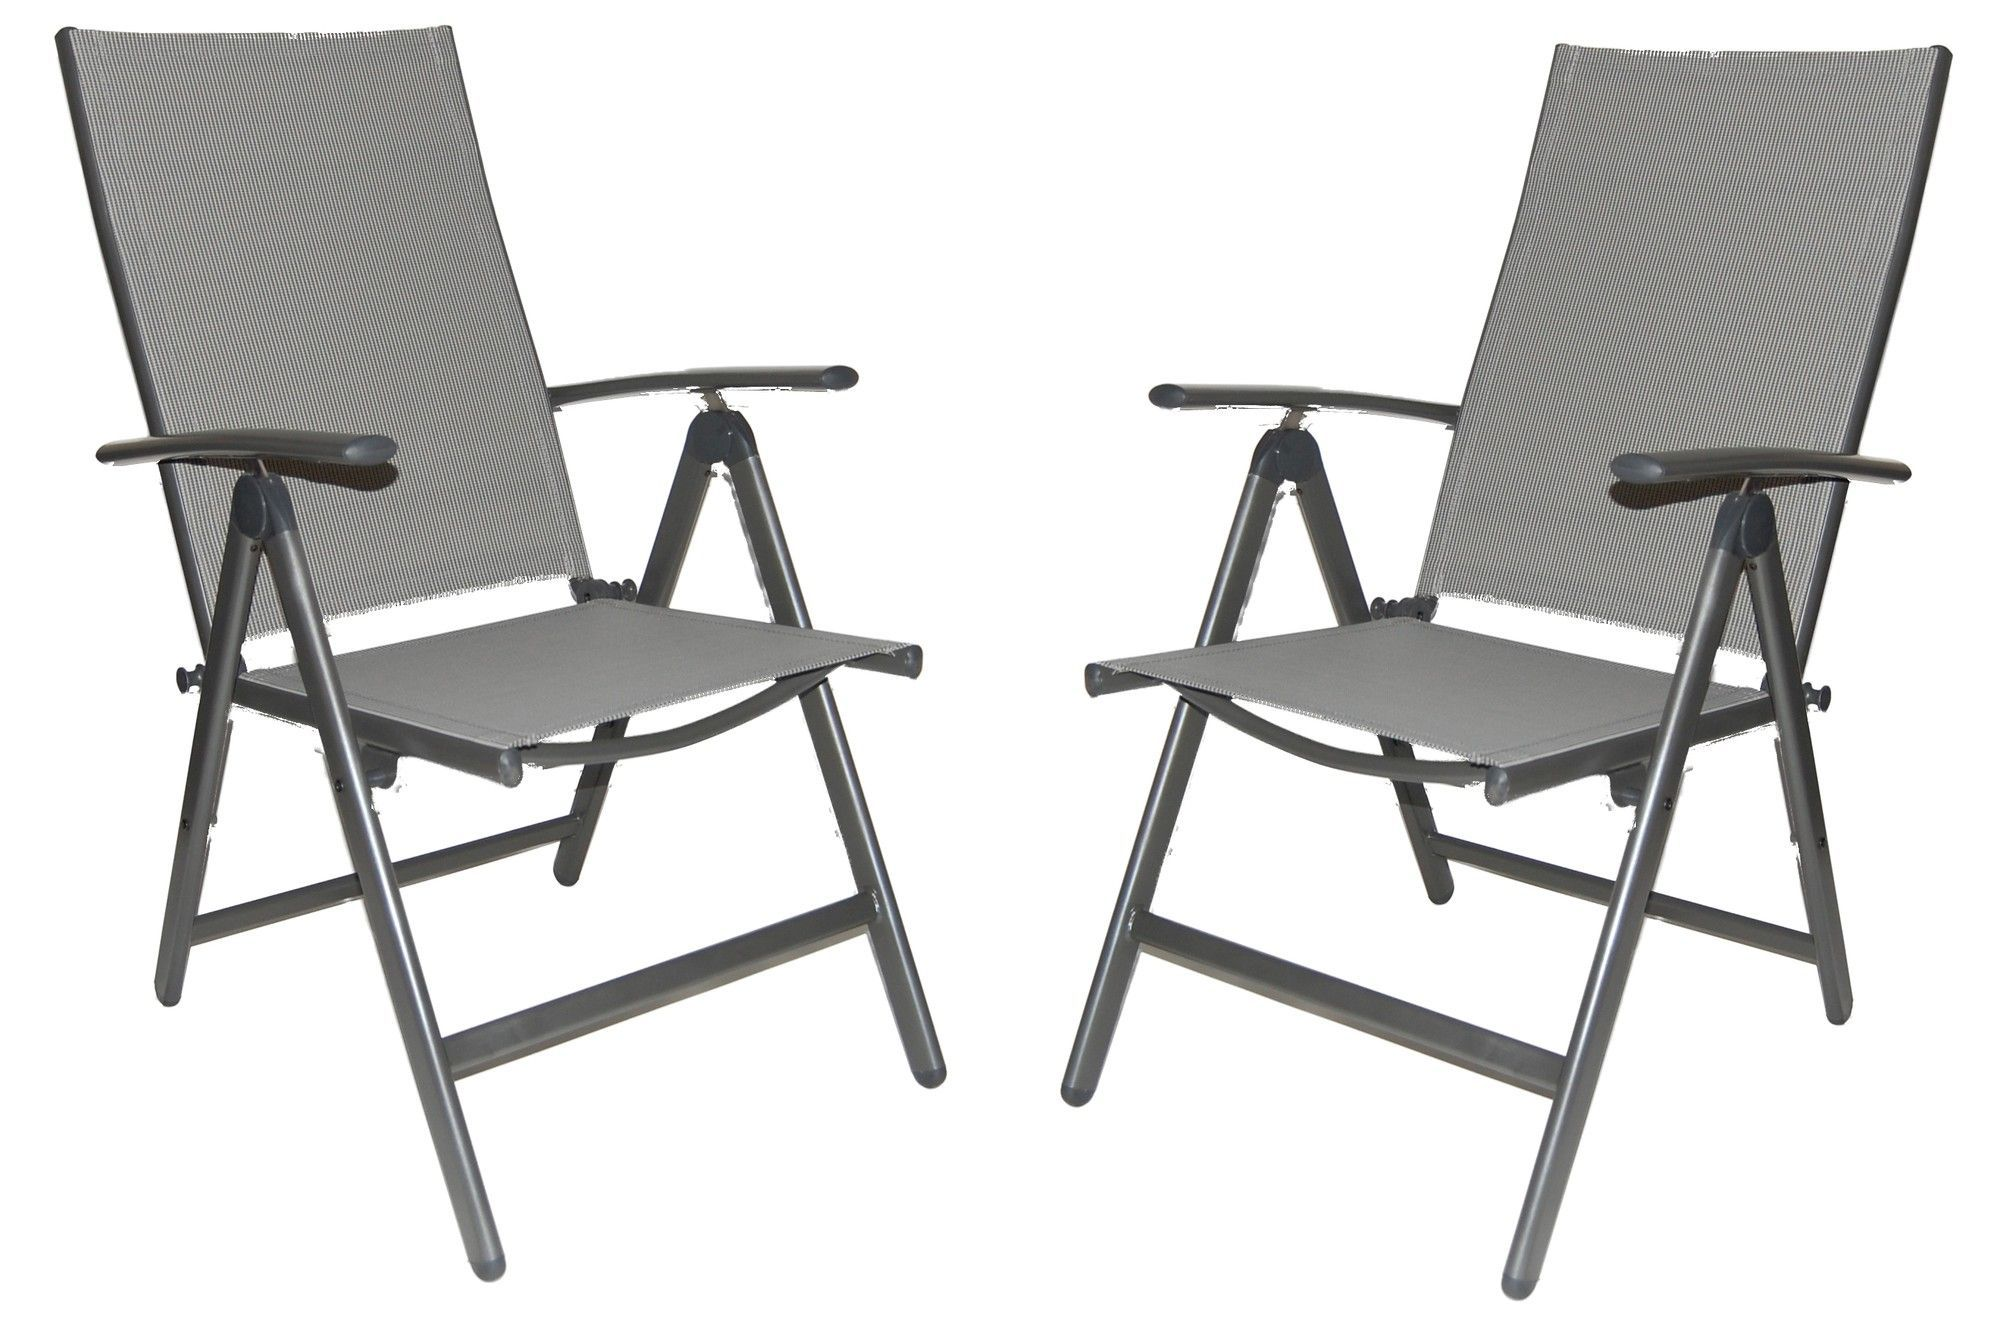 High Back Folding Lawn Chairs.Pekalongan Outdoor Patio Chair With Cushions Set Of 2